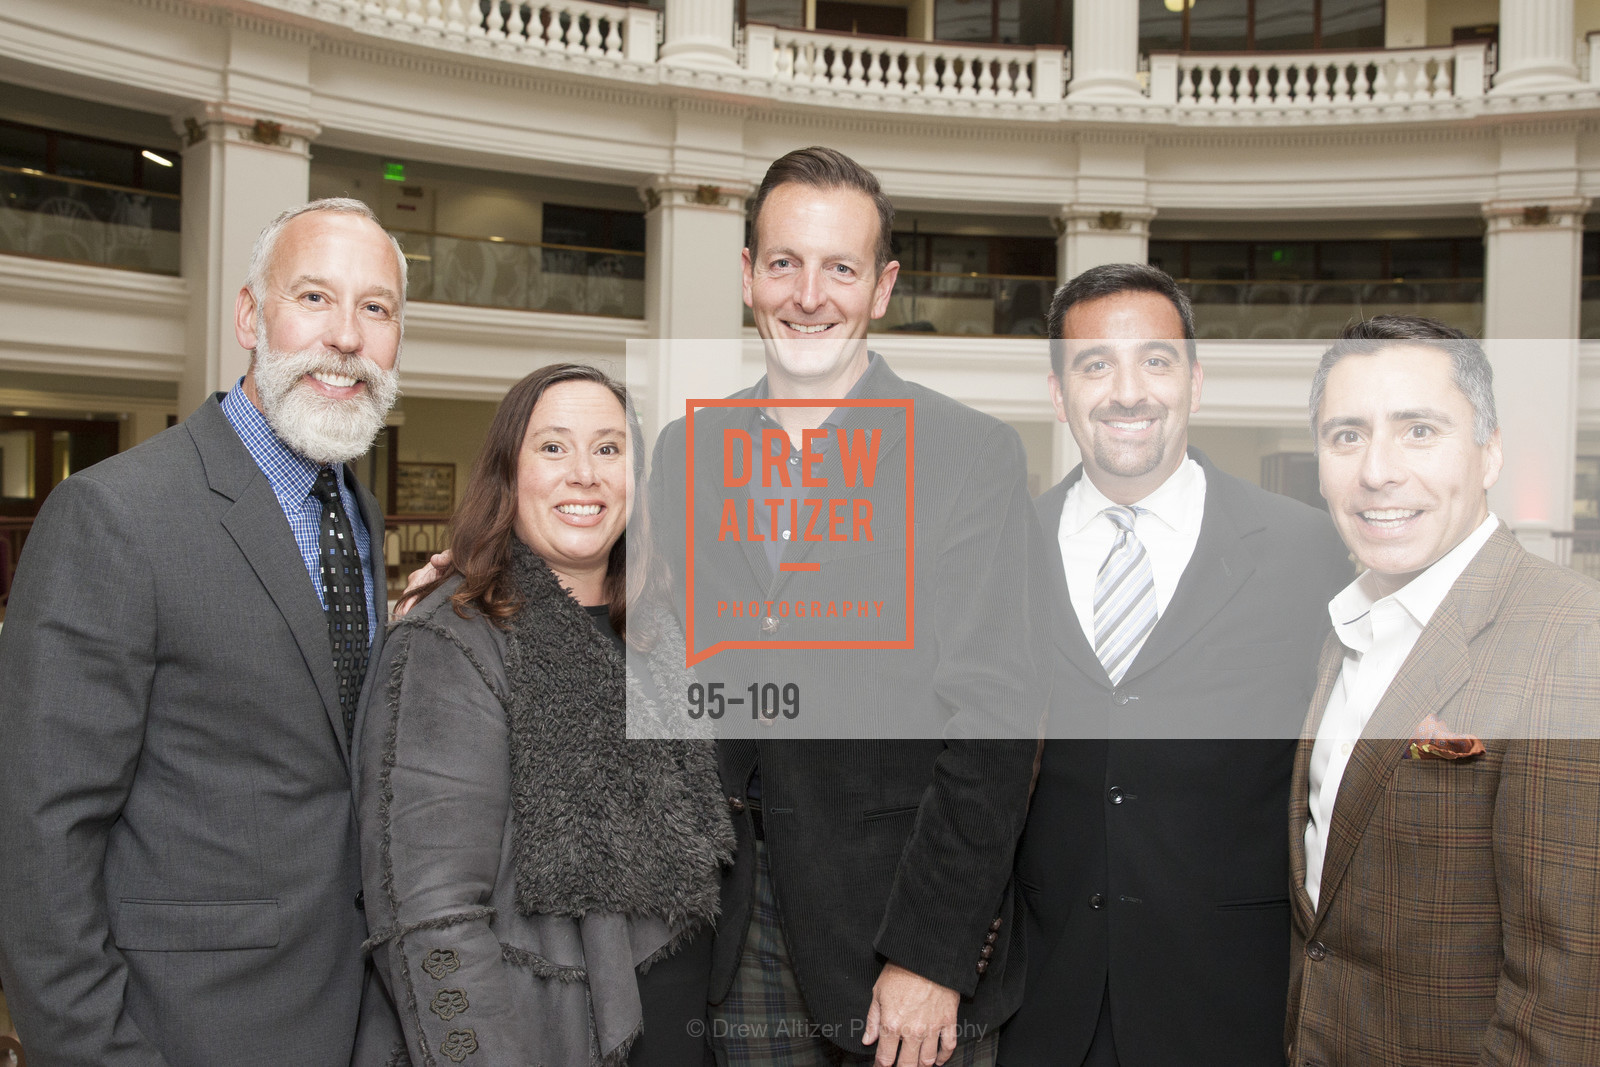 Robert Shafer, Julia Hand, Alan Pass, Jordan Suffin, Paul Ybarbo, PANGAEA GLOBAL HEALTH Leadership Dinner at Rotunda in Oakland, The Rotunda. Oakland, May 11th, 2015,Drew Altizer, Drew Altizer Photography, full-service agency, private events, San Francisco photographer, photographer california